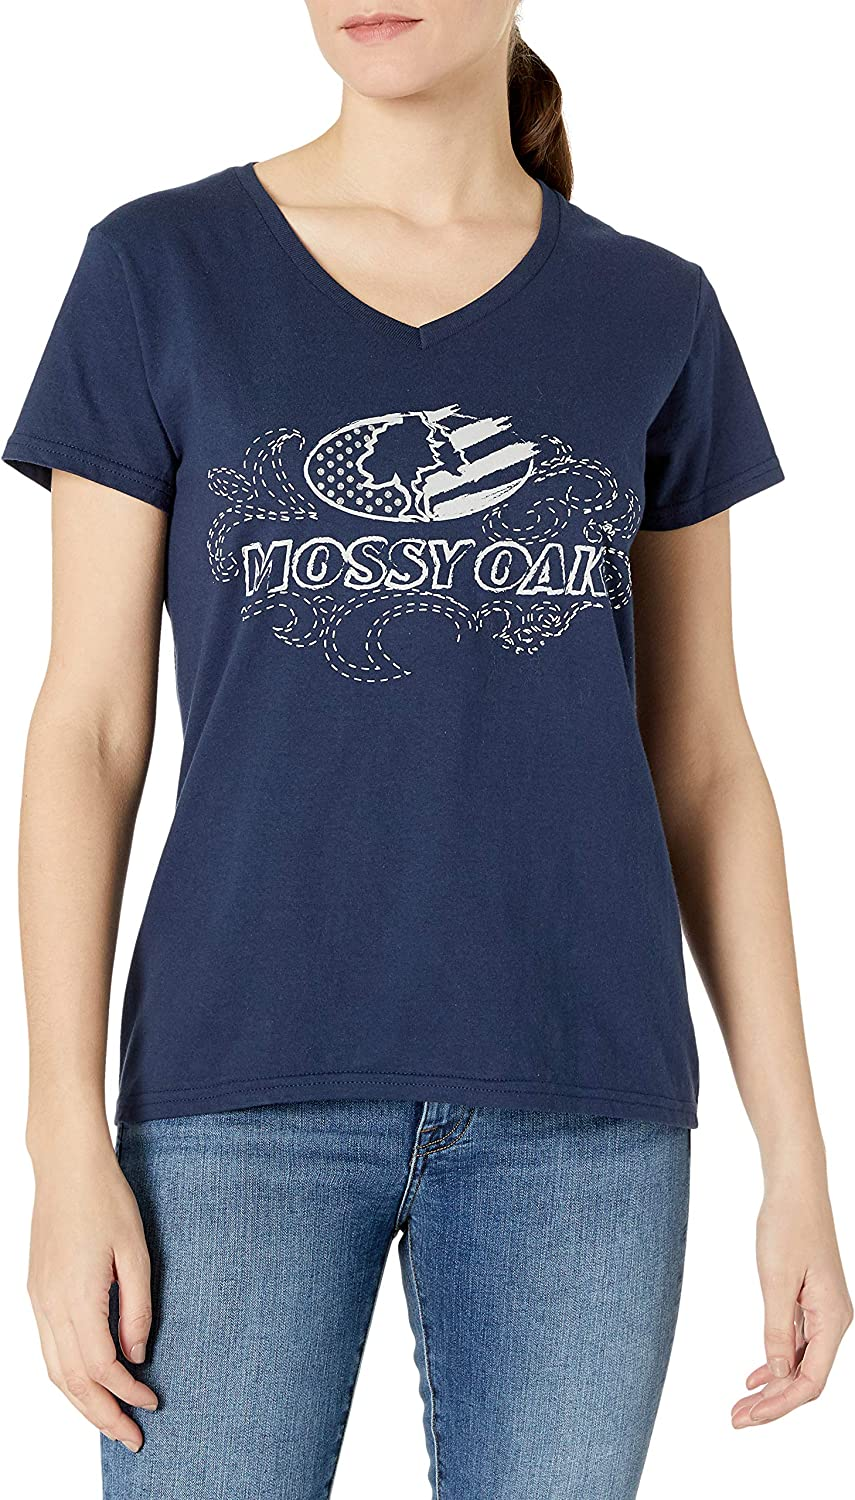 Mossy Oak Women's Short Latest Low price item Sleeve Front Graphic Tee V-Neck